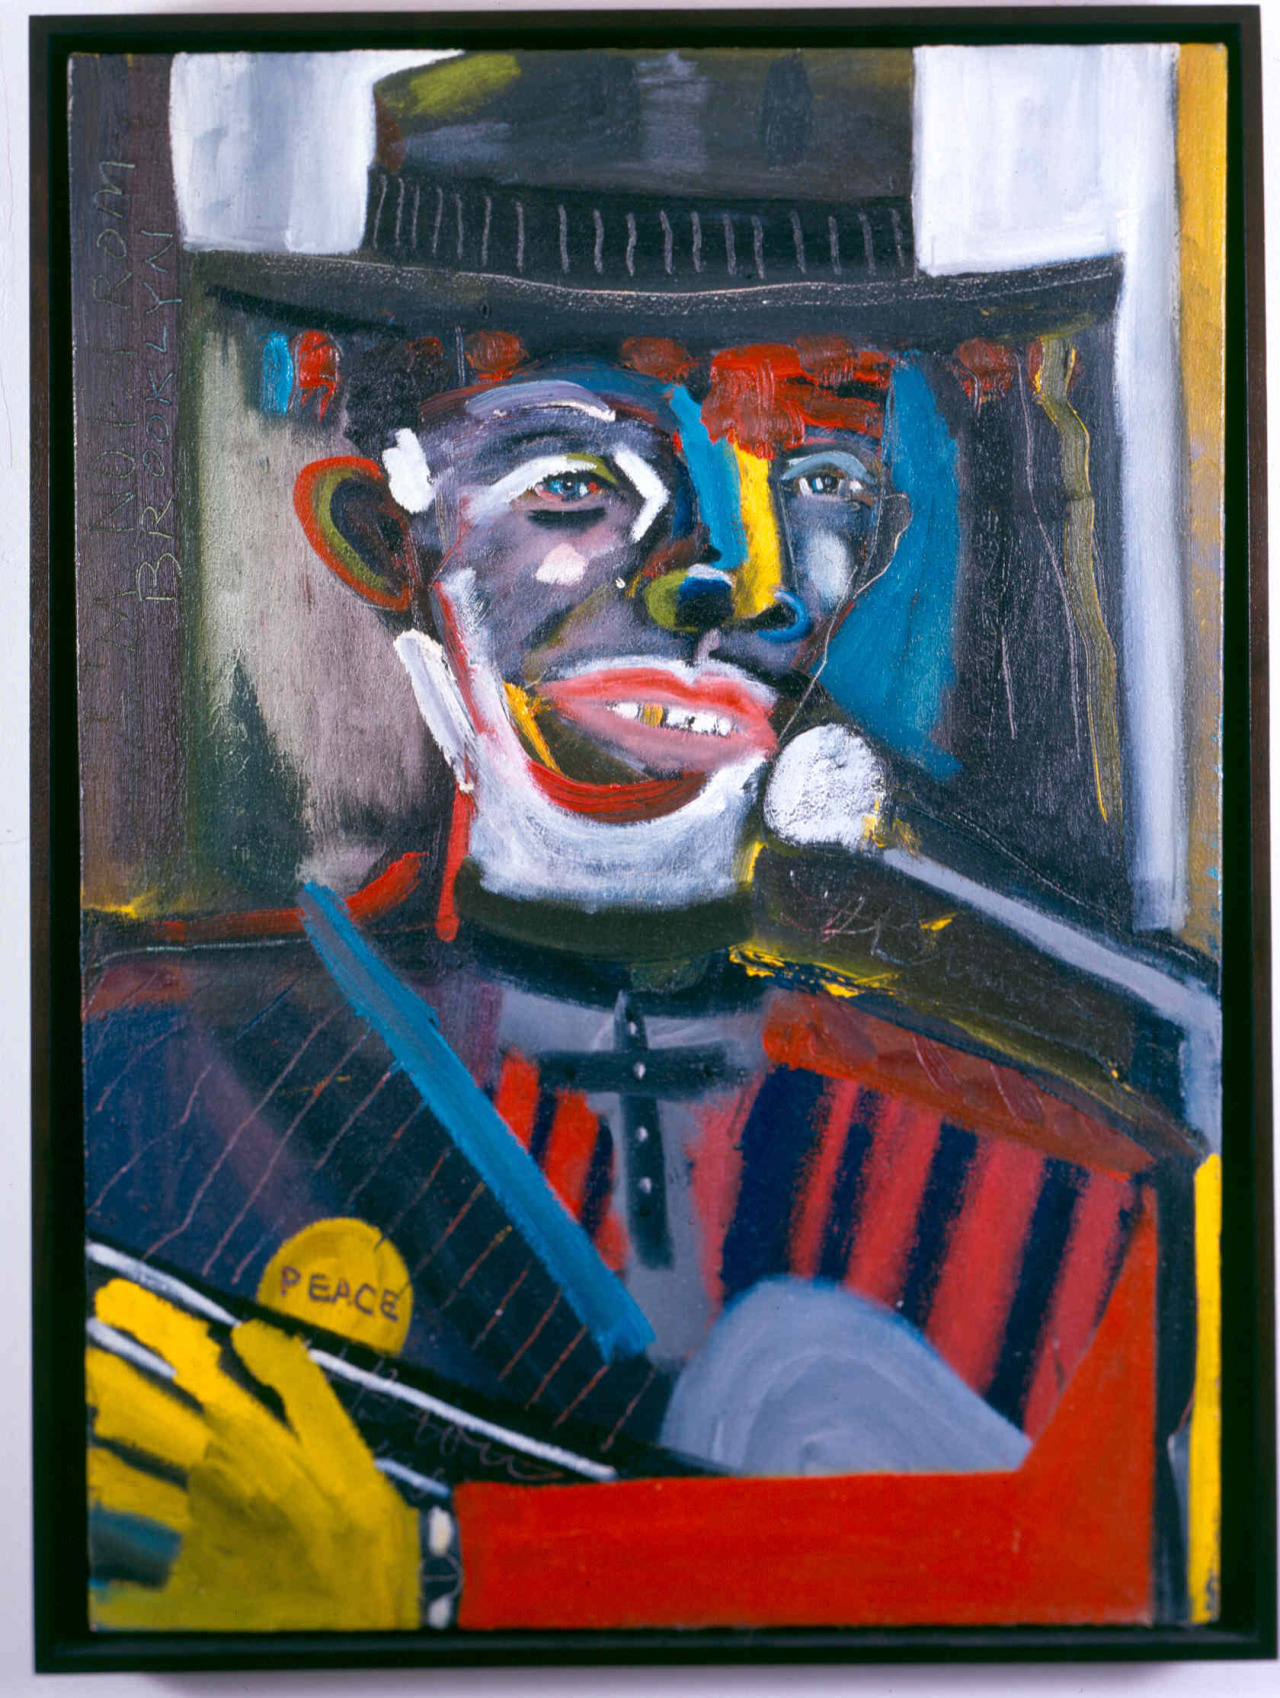 "Frederick Brown  (1945–2012)Stagger Lee in Concert,1983 oil on linen 38 1/4"" x 28 1/8""The Studio Museum in Harlem; Gift of Byron E. Lewis 88.8 Ten years ago, our Spring 2003 exhibition was Frederick Brown: Portraits in Jazz, Blues and Other Icons"